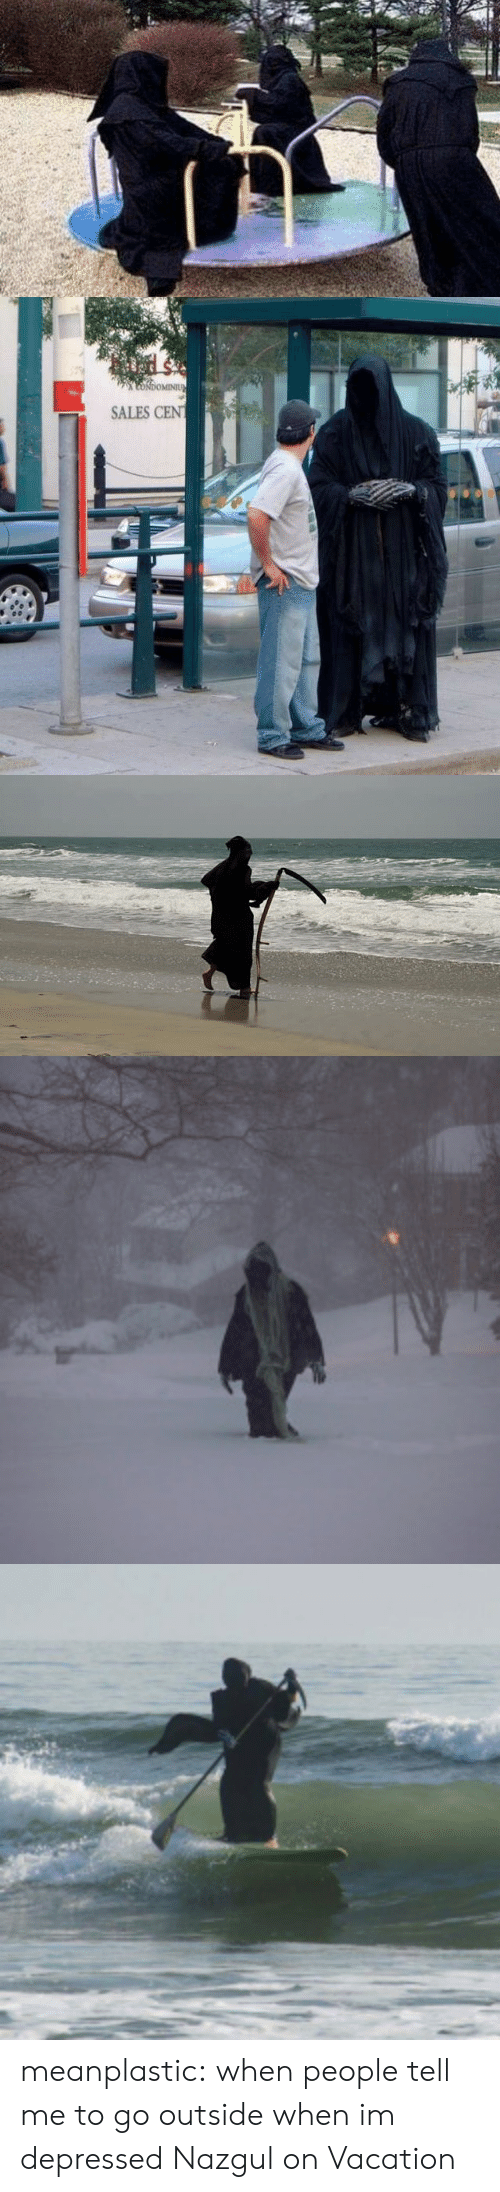 On Vacation: CoNdoMINIU  SALES CEN meanplastic:  when people tell me to go outside when im depressed  Nazgul on Vacation